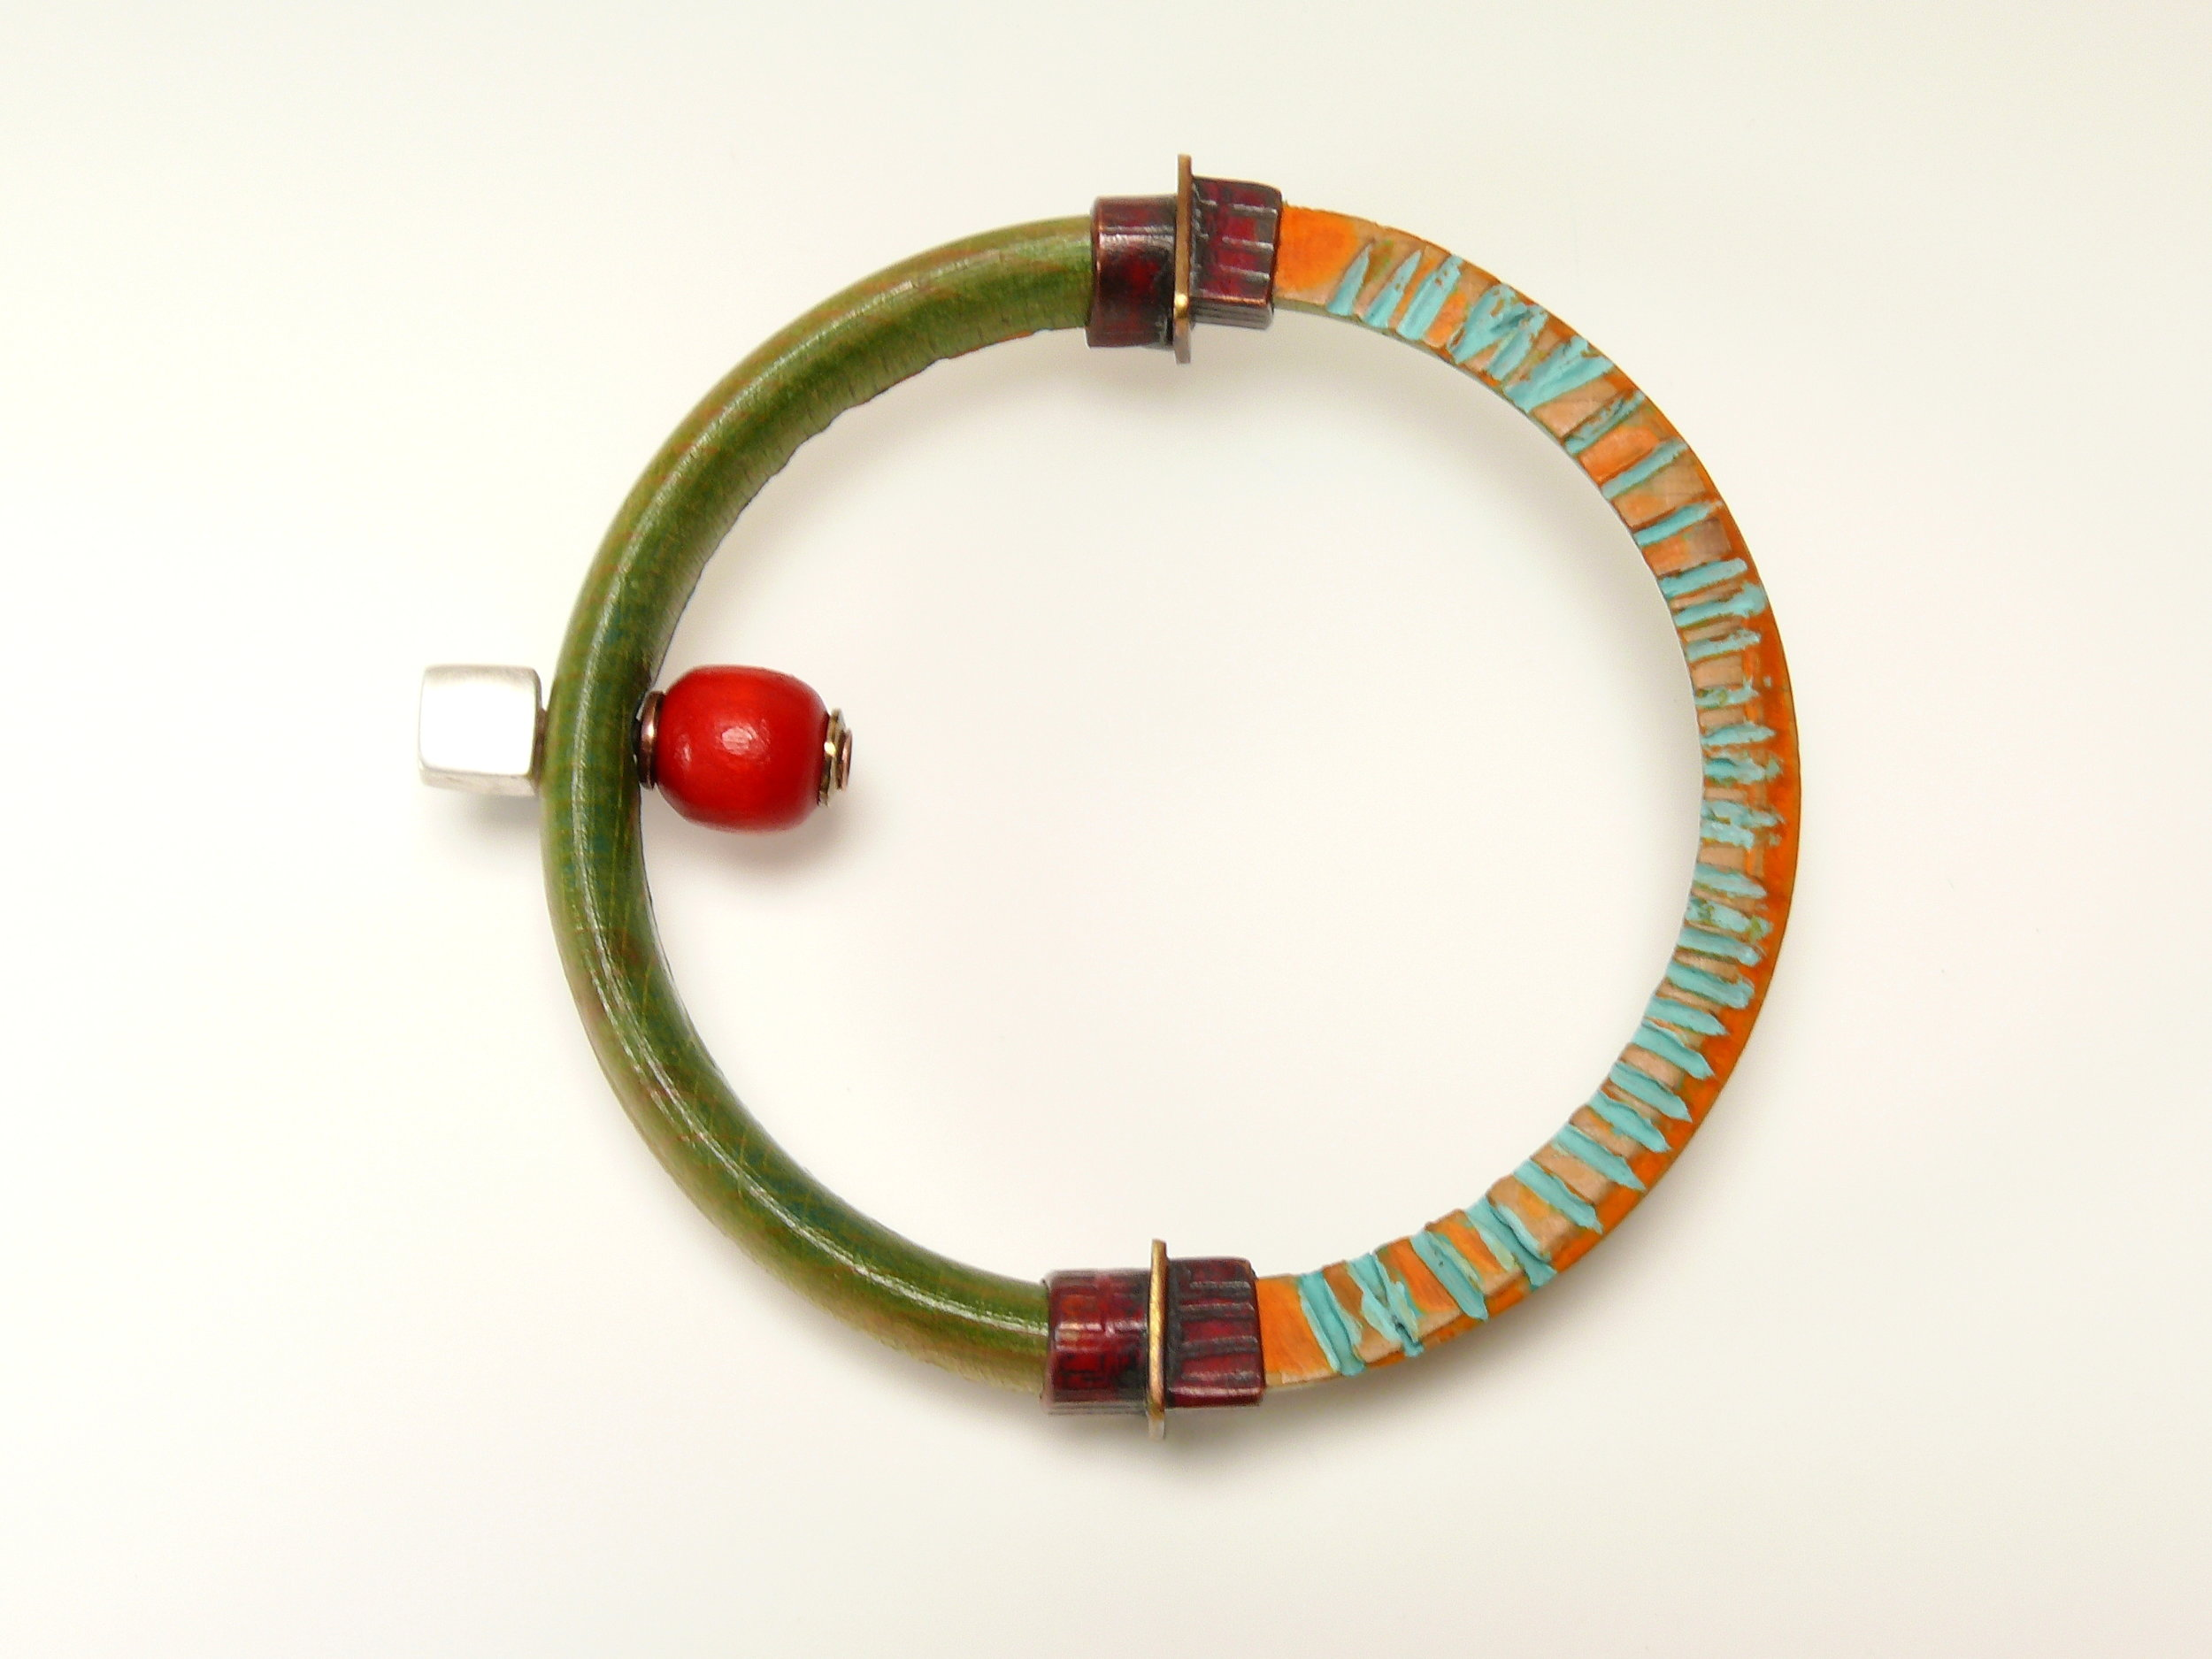 23_lozier_full.circle.with.red.bead copy.JPG